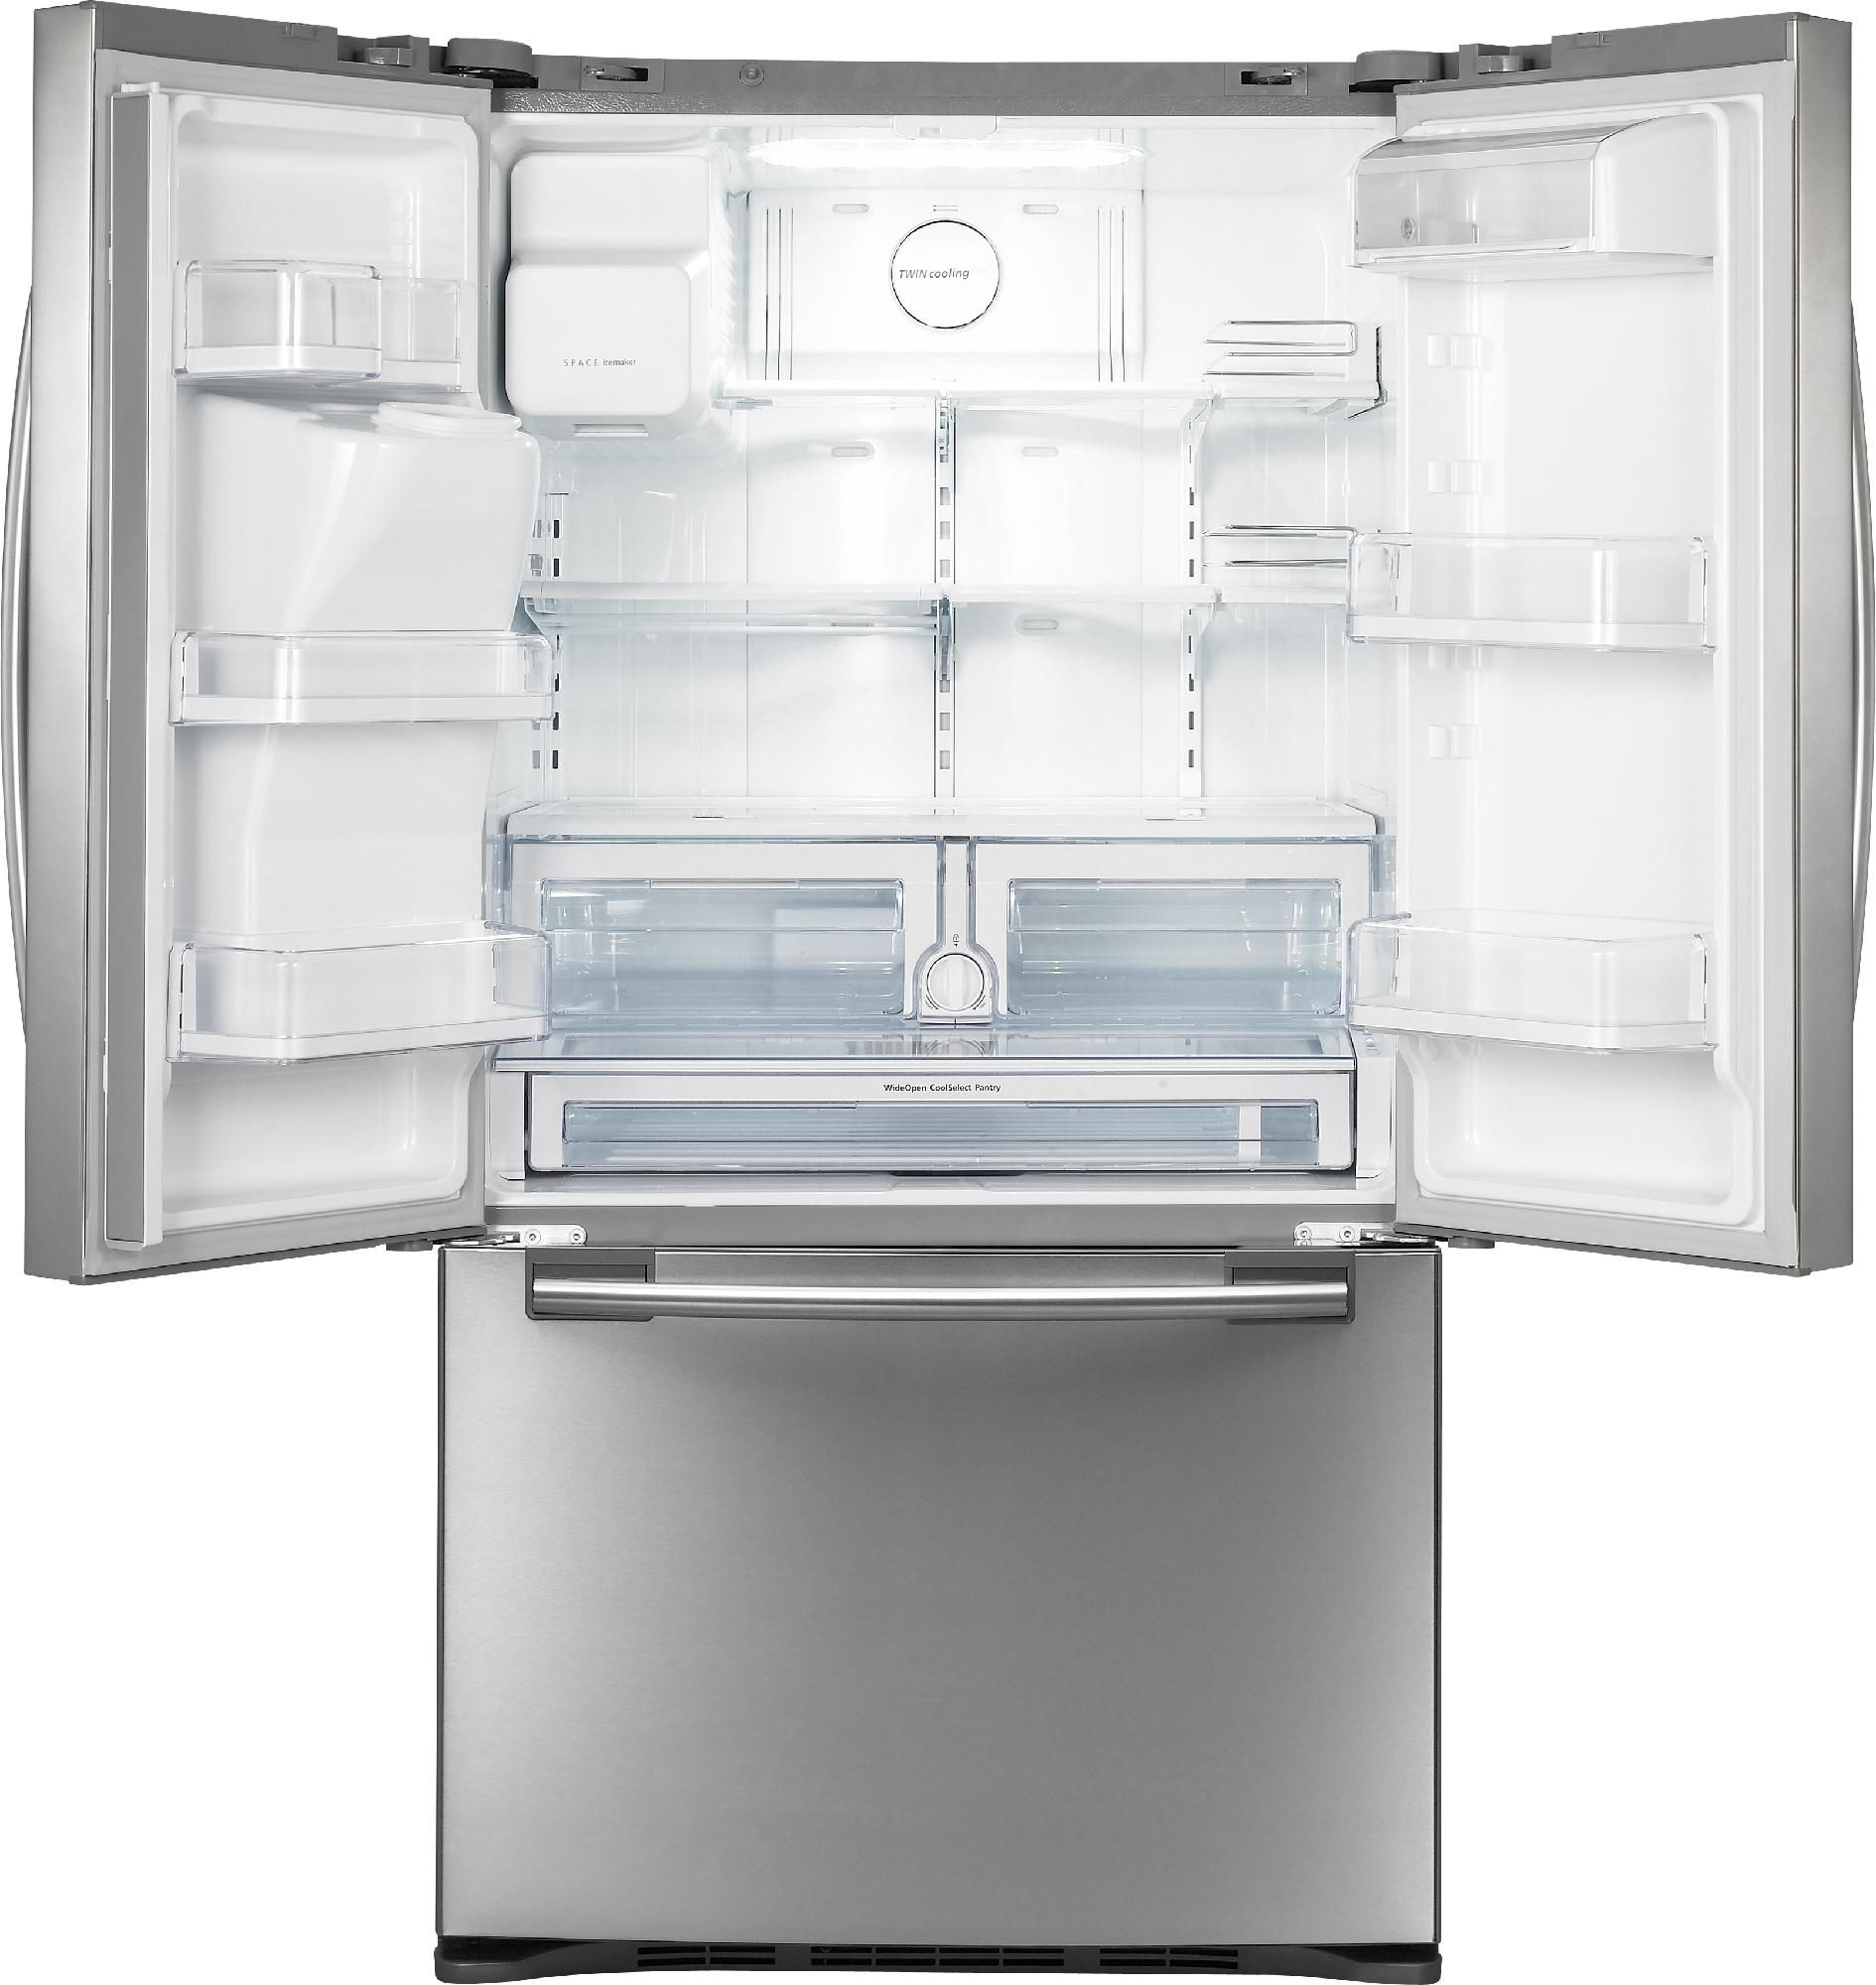 Samsung 29.0 cu. ft. French-Door Bottom-Freezer Refrigerator